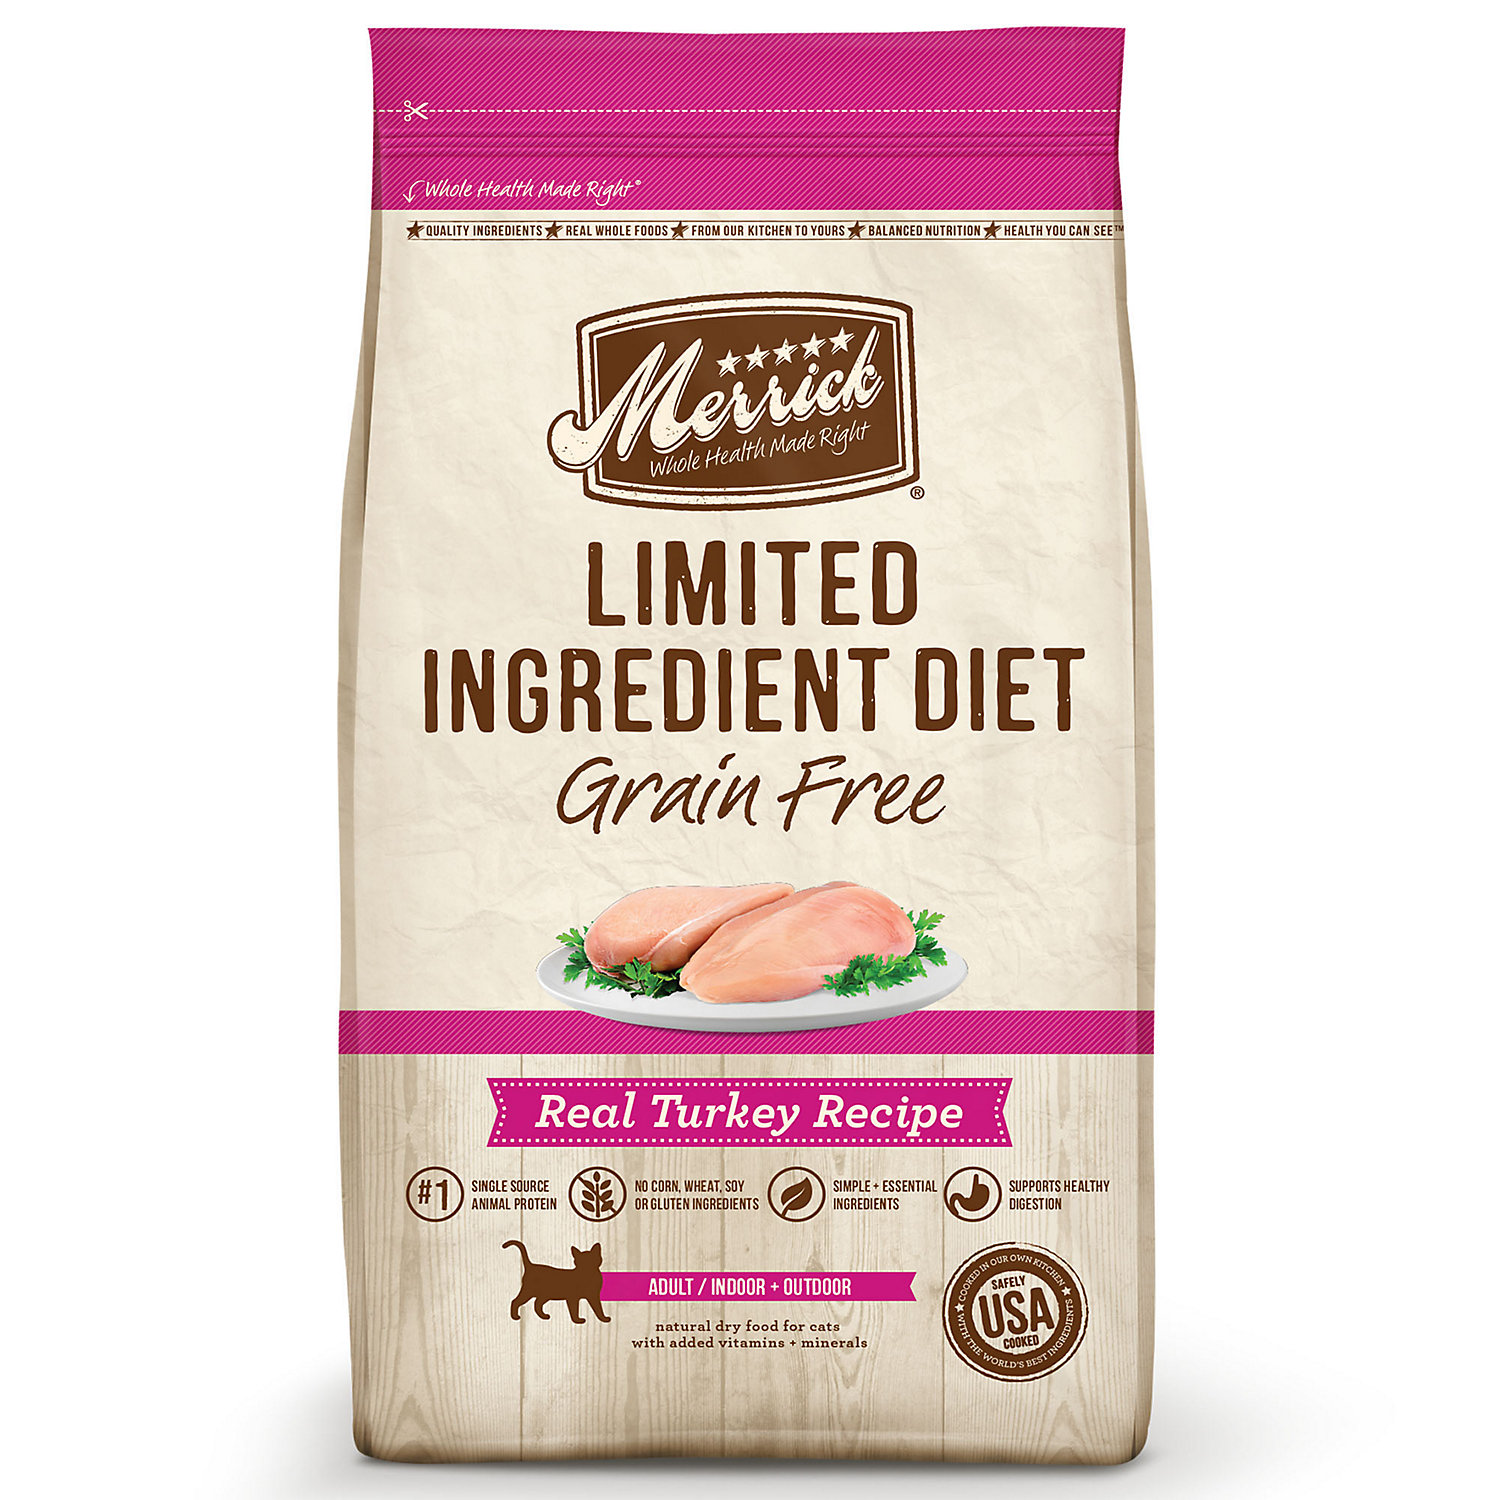 Merrick Limited Ingredient Diet Grain Free Turkey Cat Food,